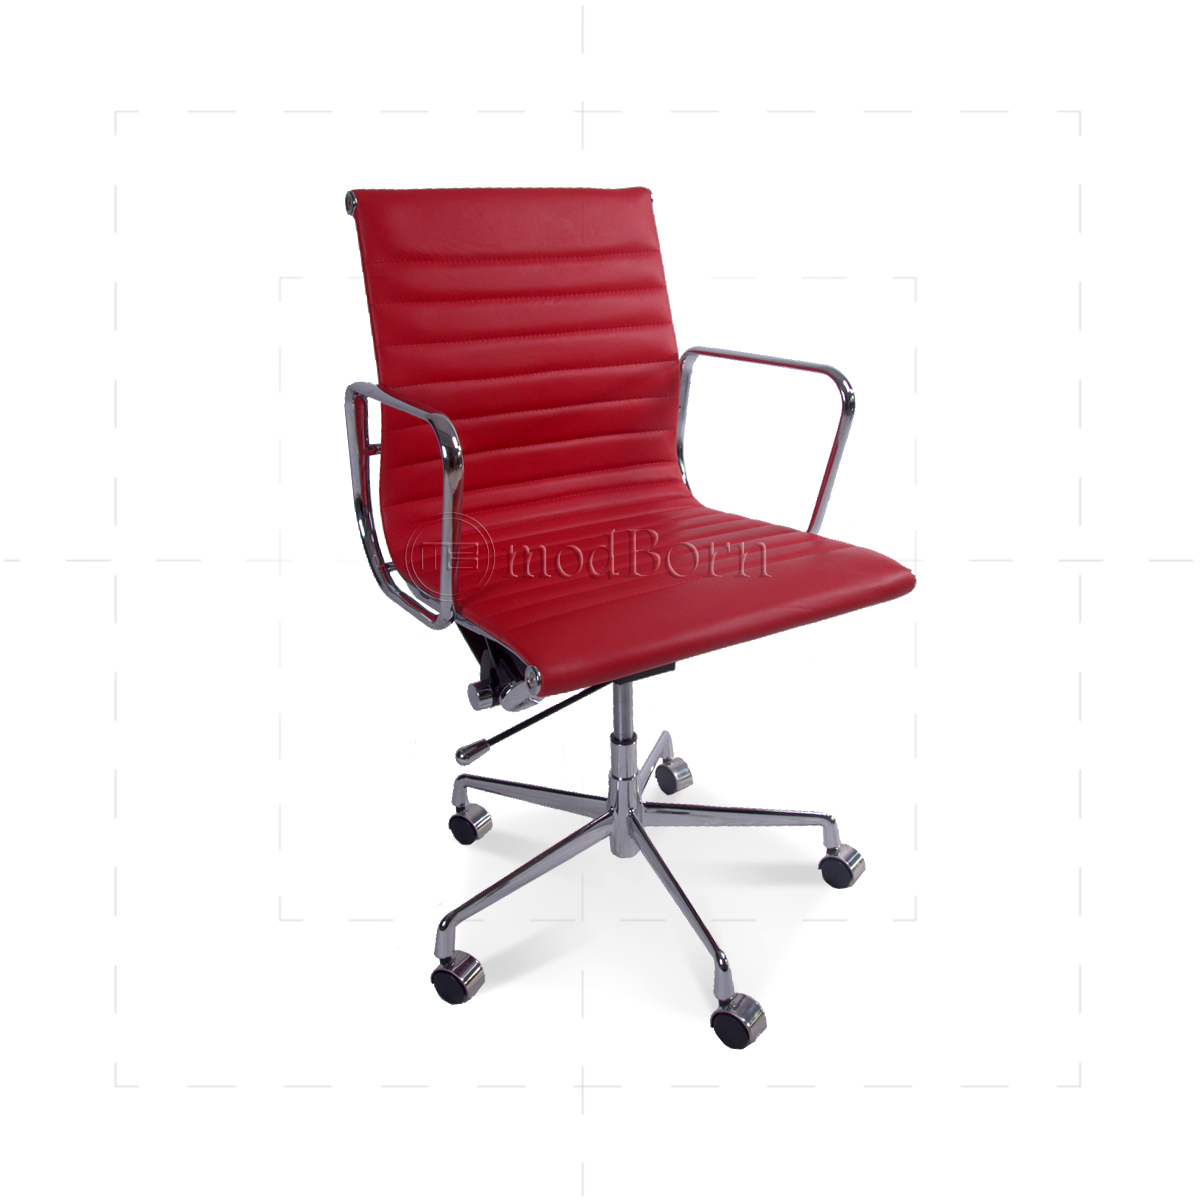 ea117 eames style office chair low back ribbed red leather replica. Black Bedroom Furniture Sets. Home Design Ideas